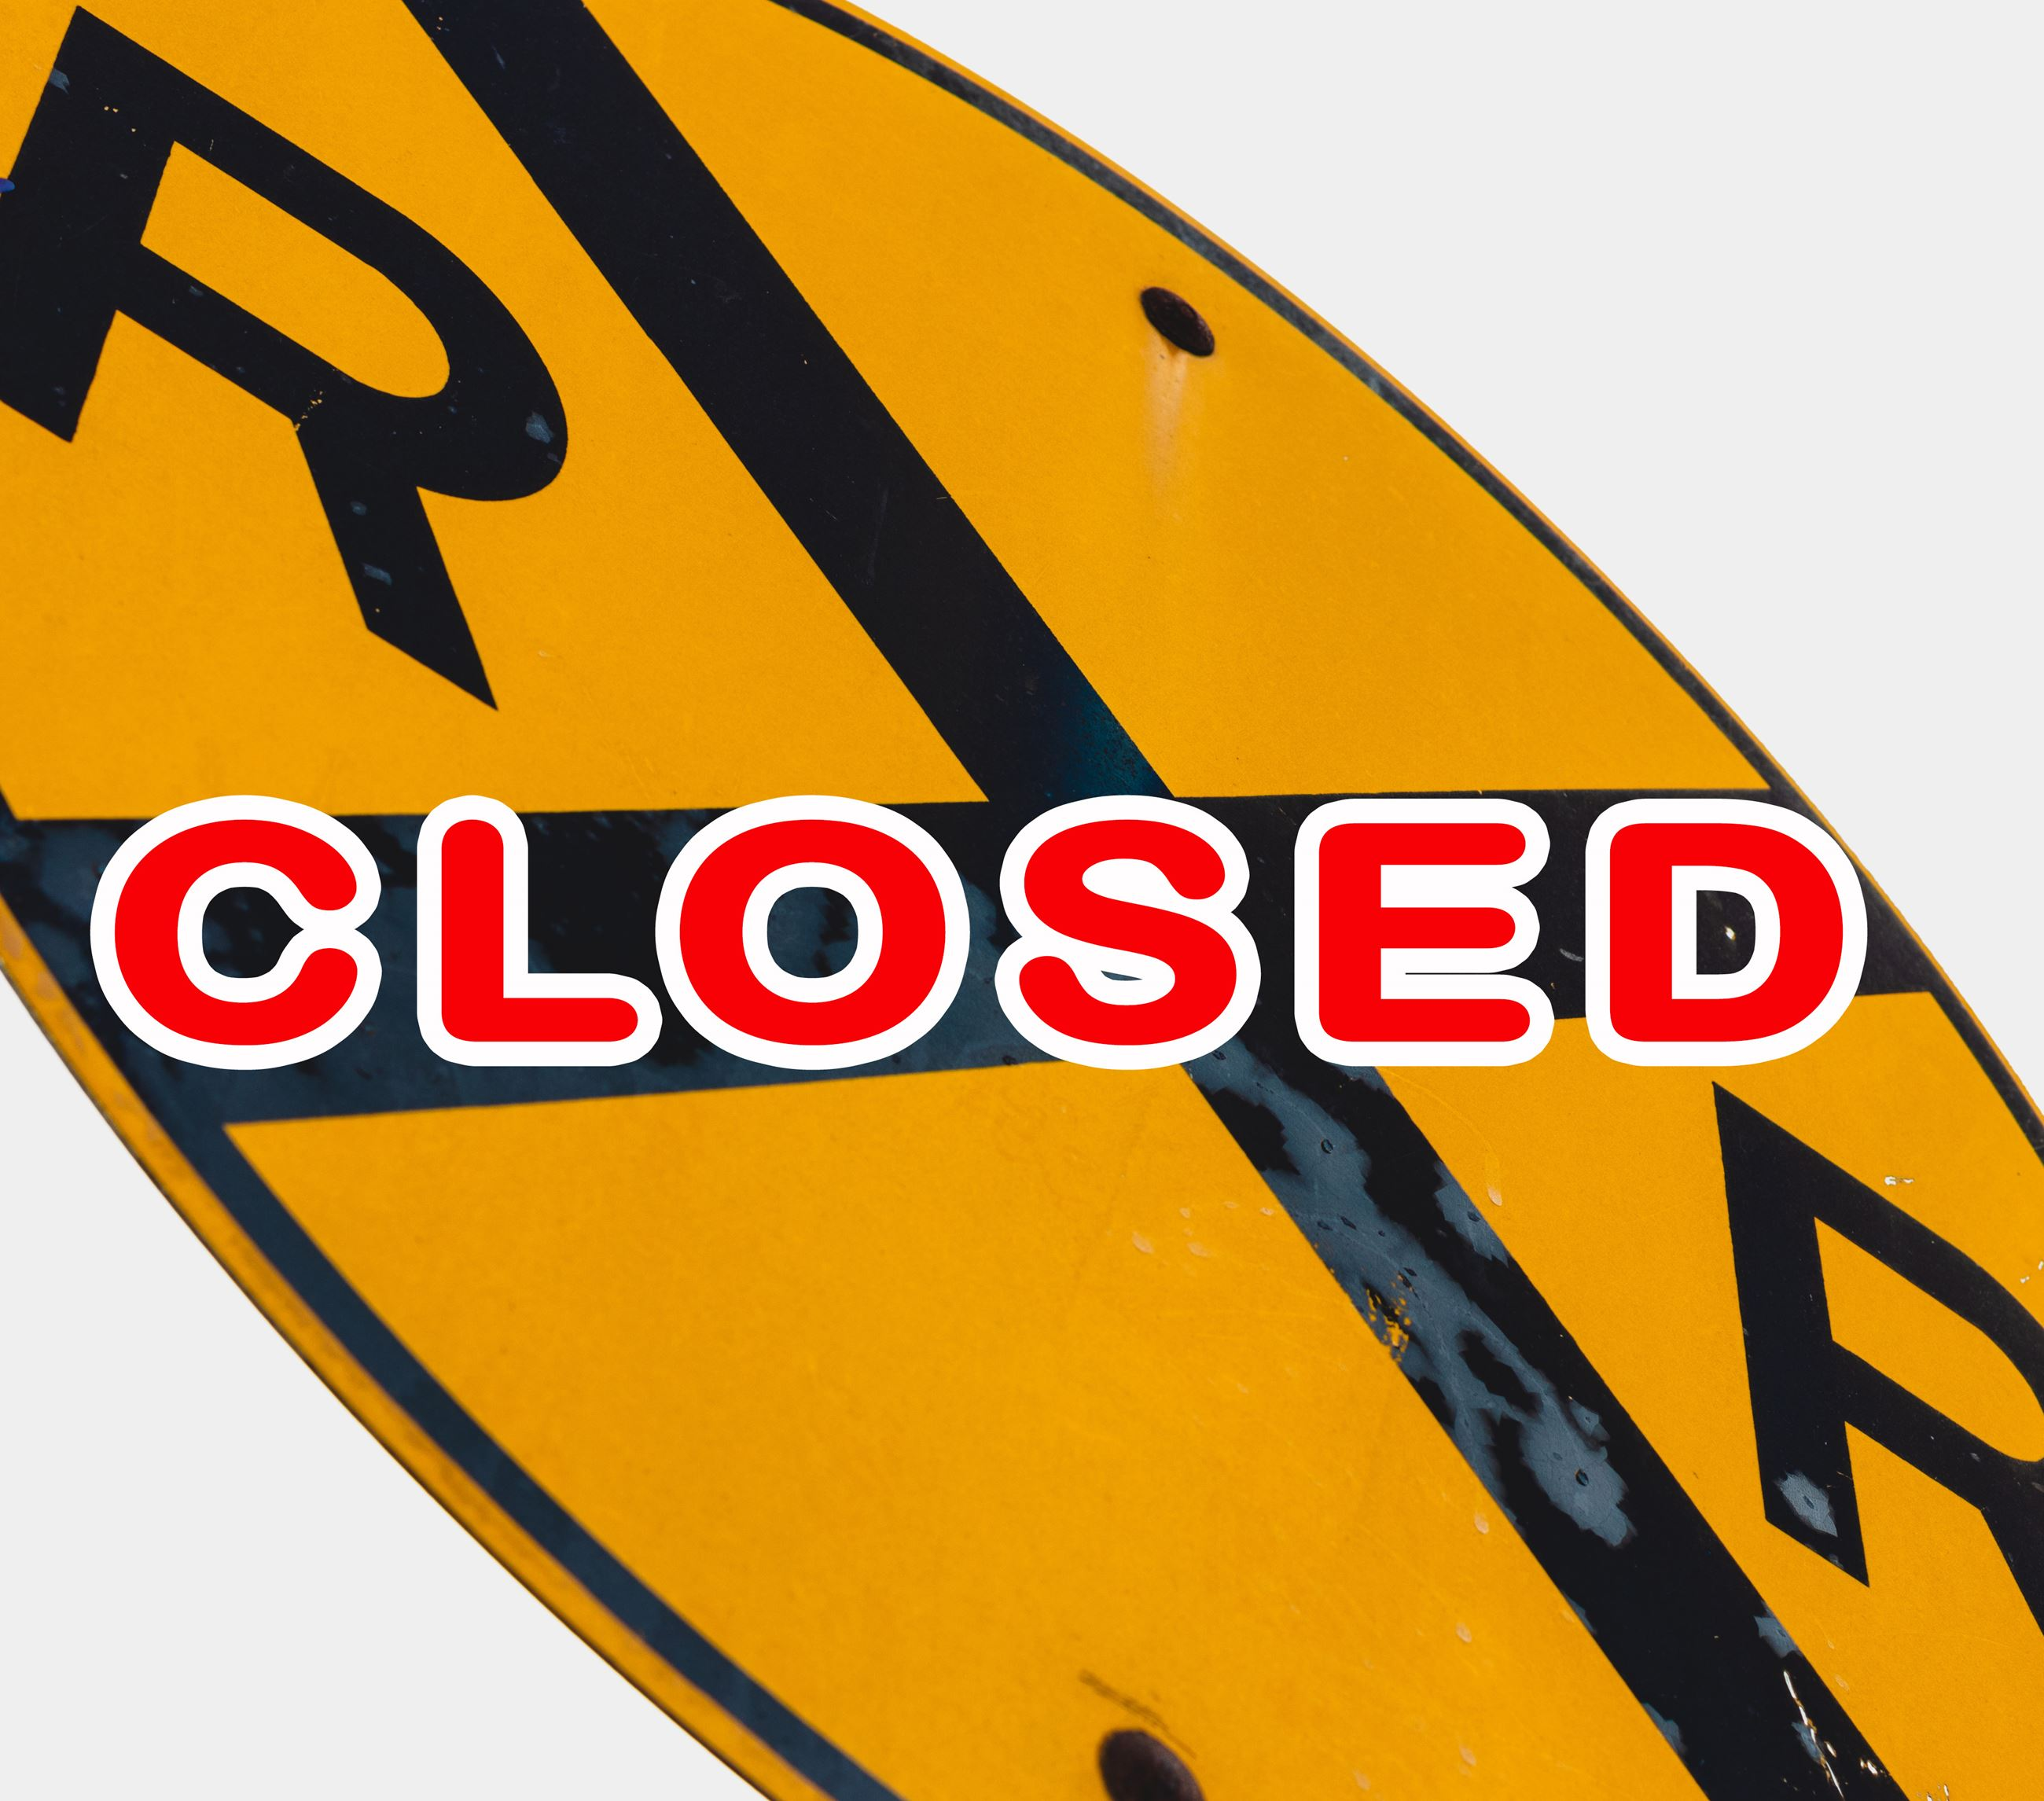 Rail Road Crossing Closed_Newsfeed